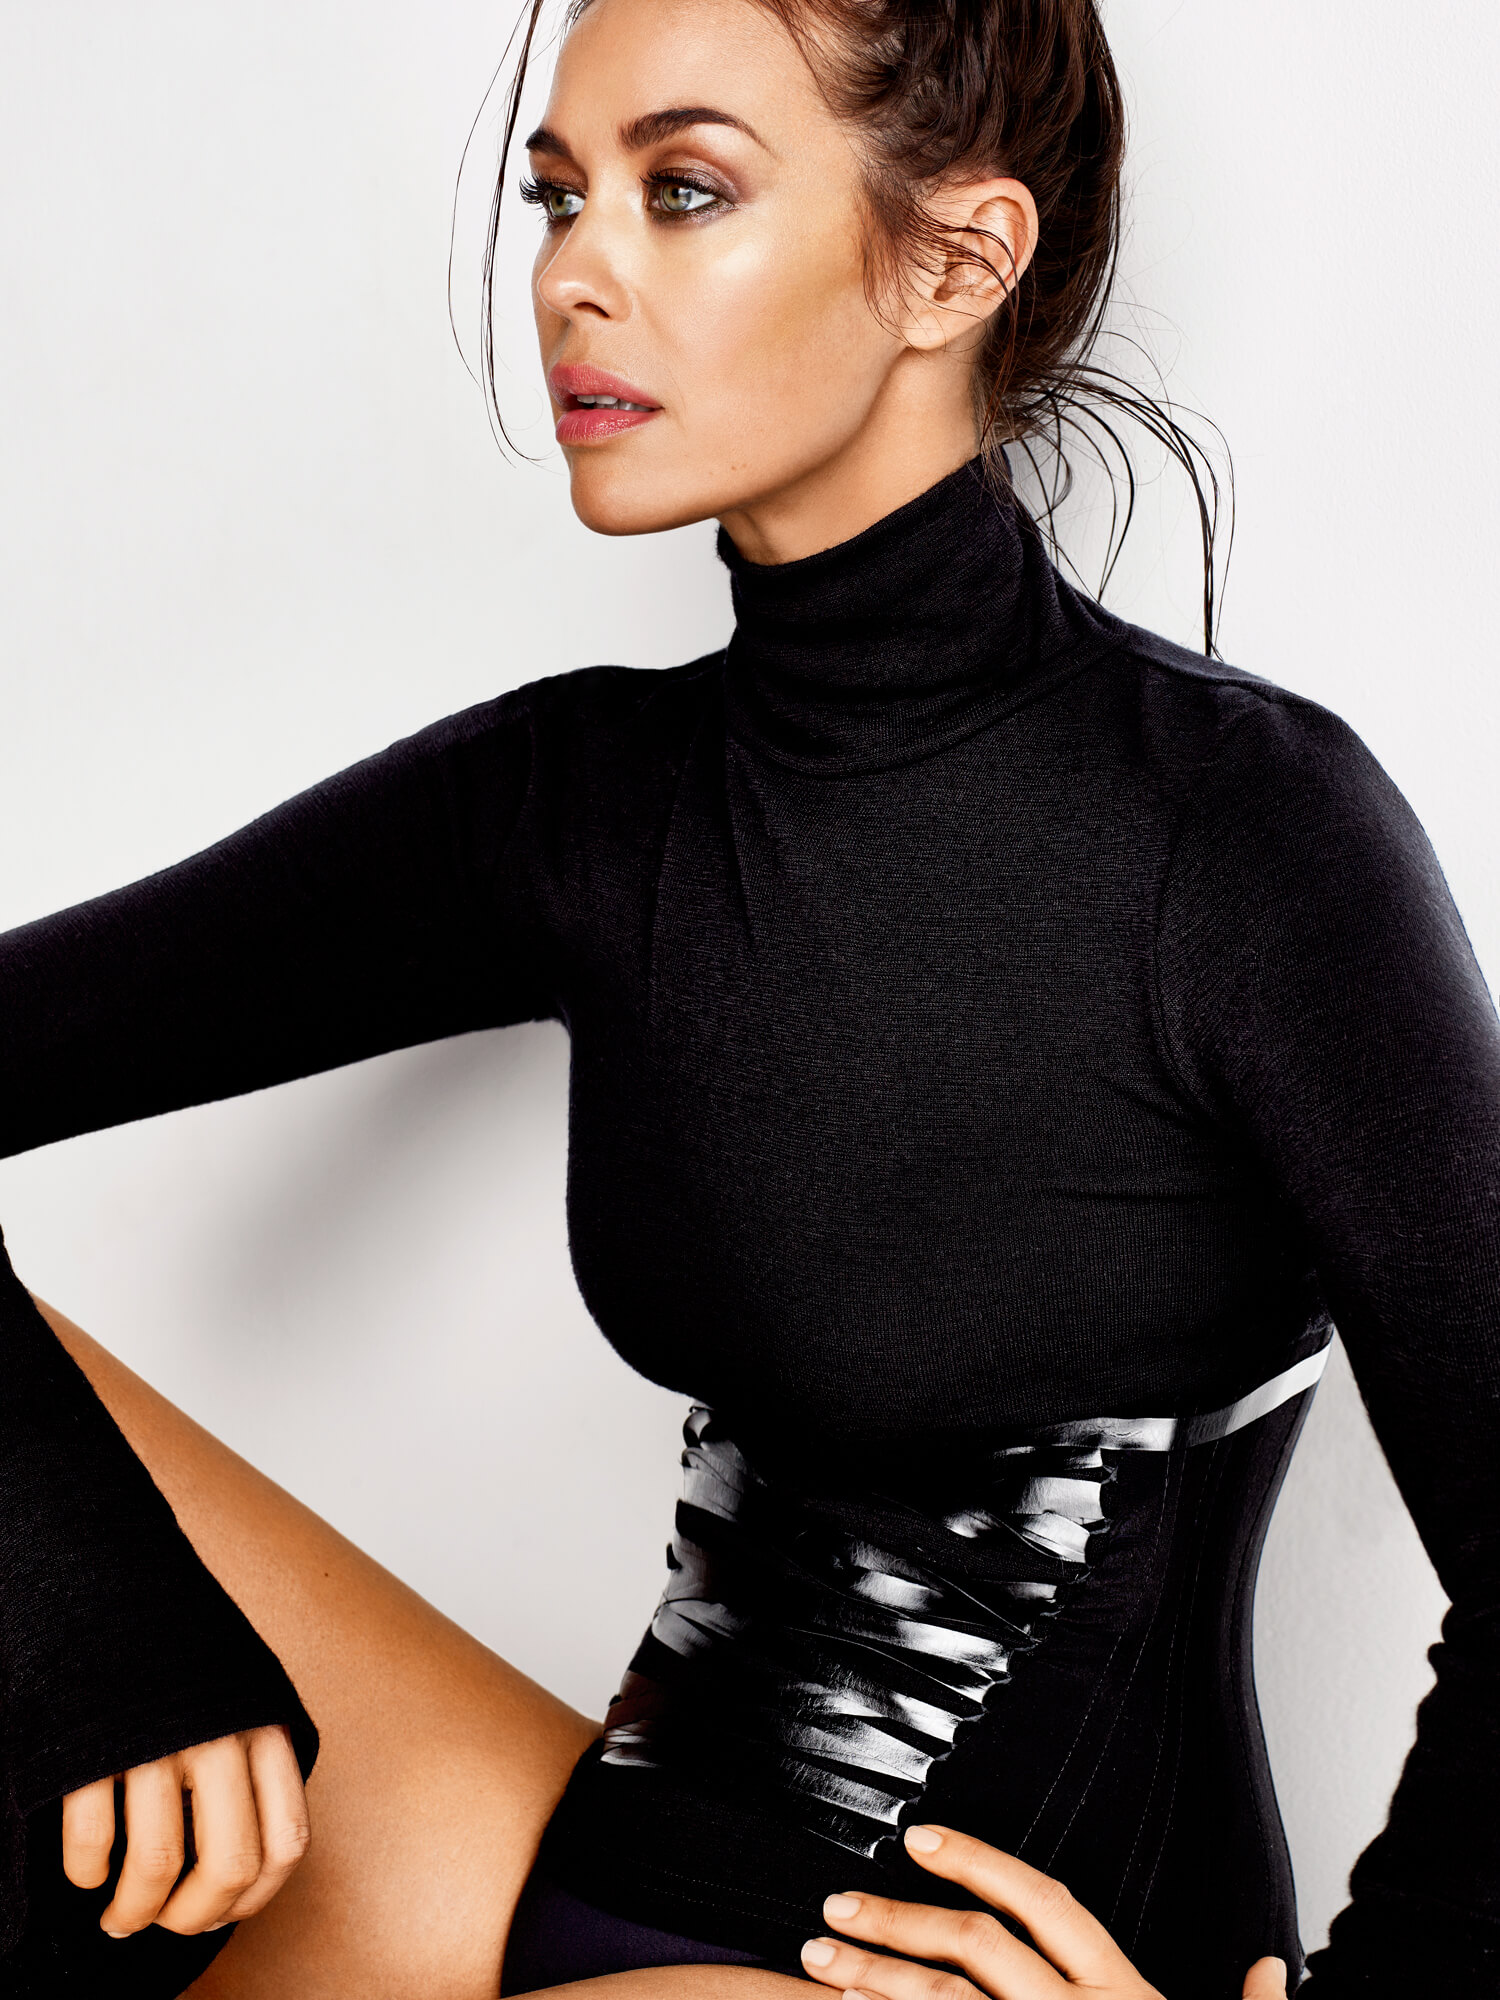 MEGAN GALE THE MODEL.jpg